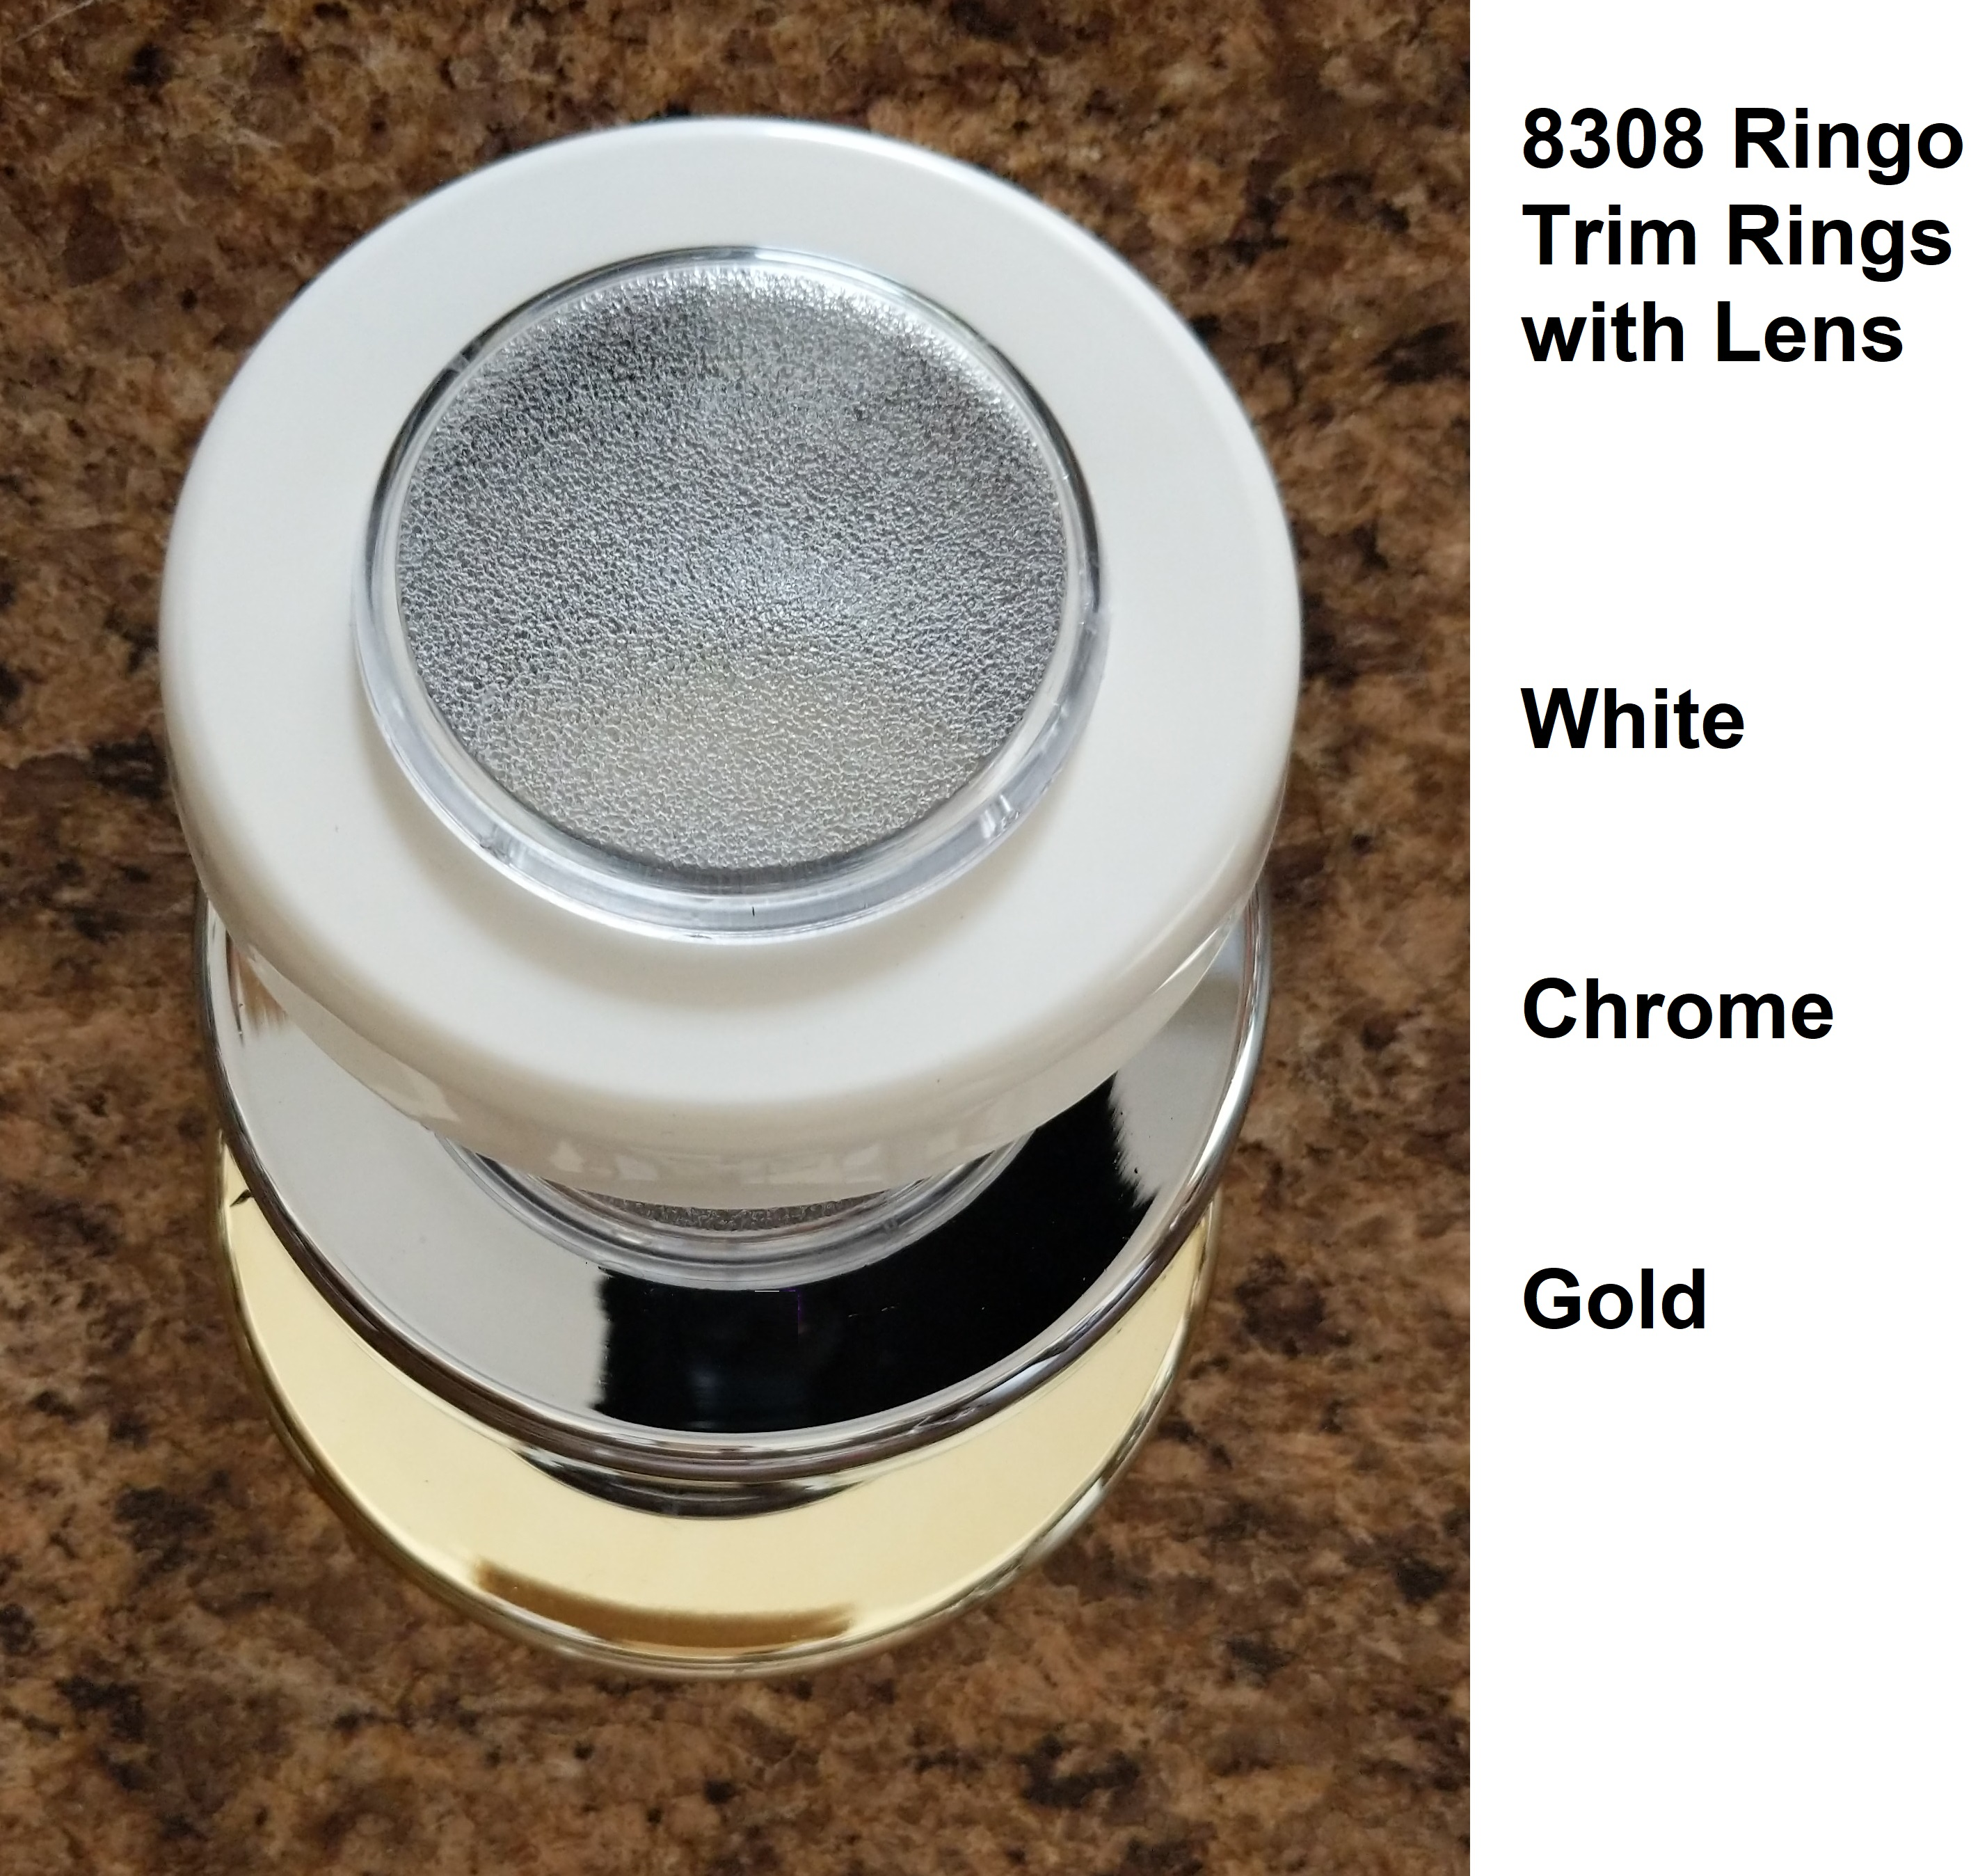 Trim Ring with Lens - Replacement Ringo 8308 by Frilight, white, chrome or gold color options